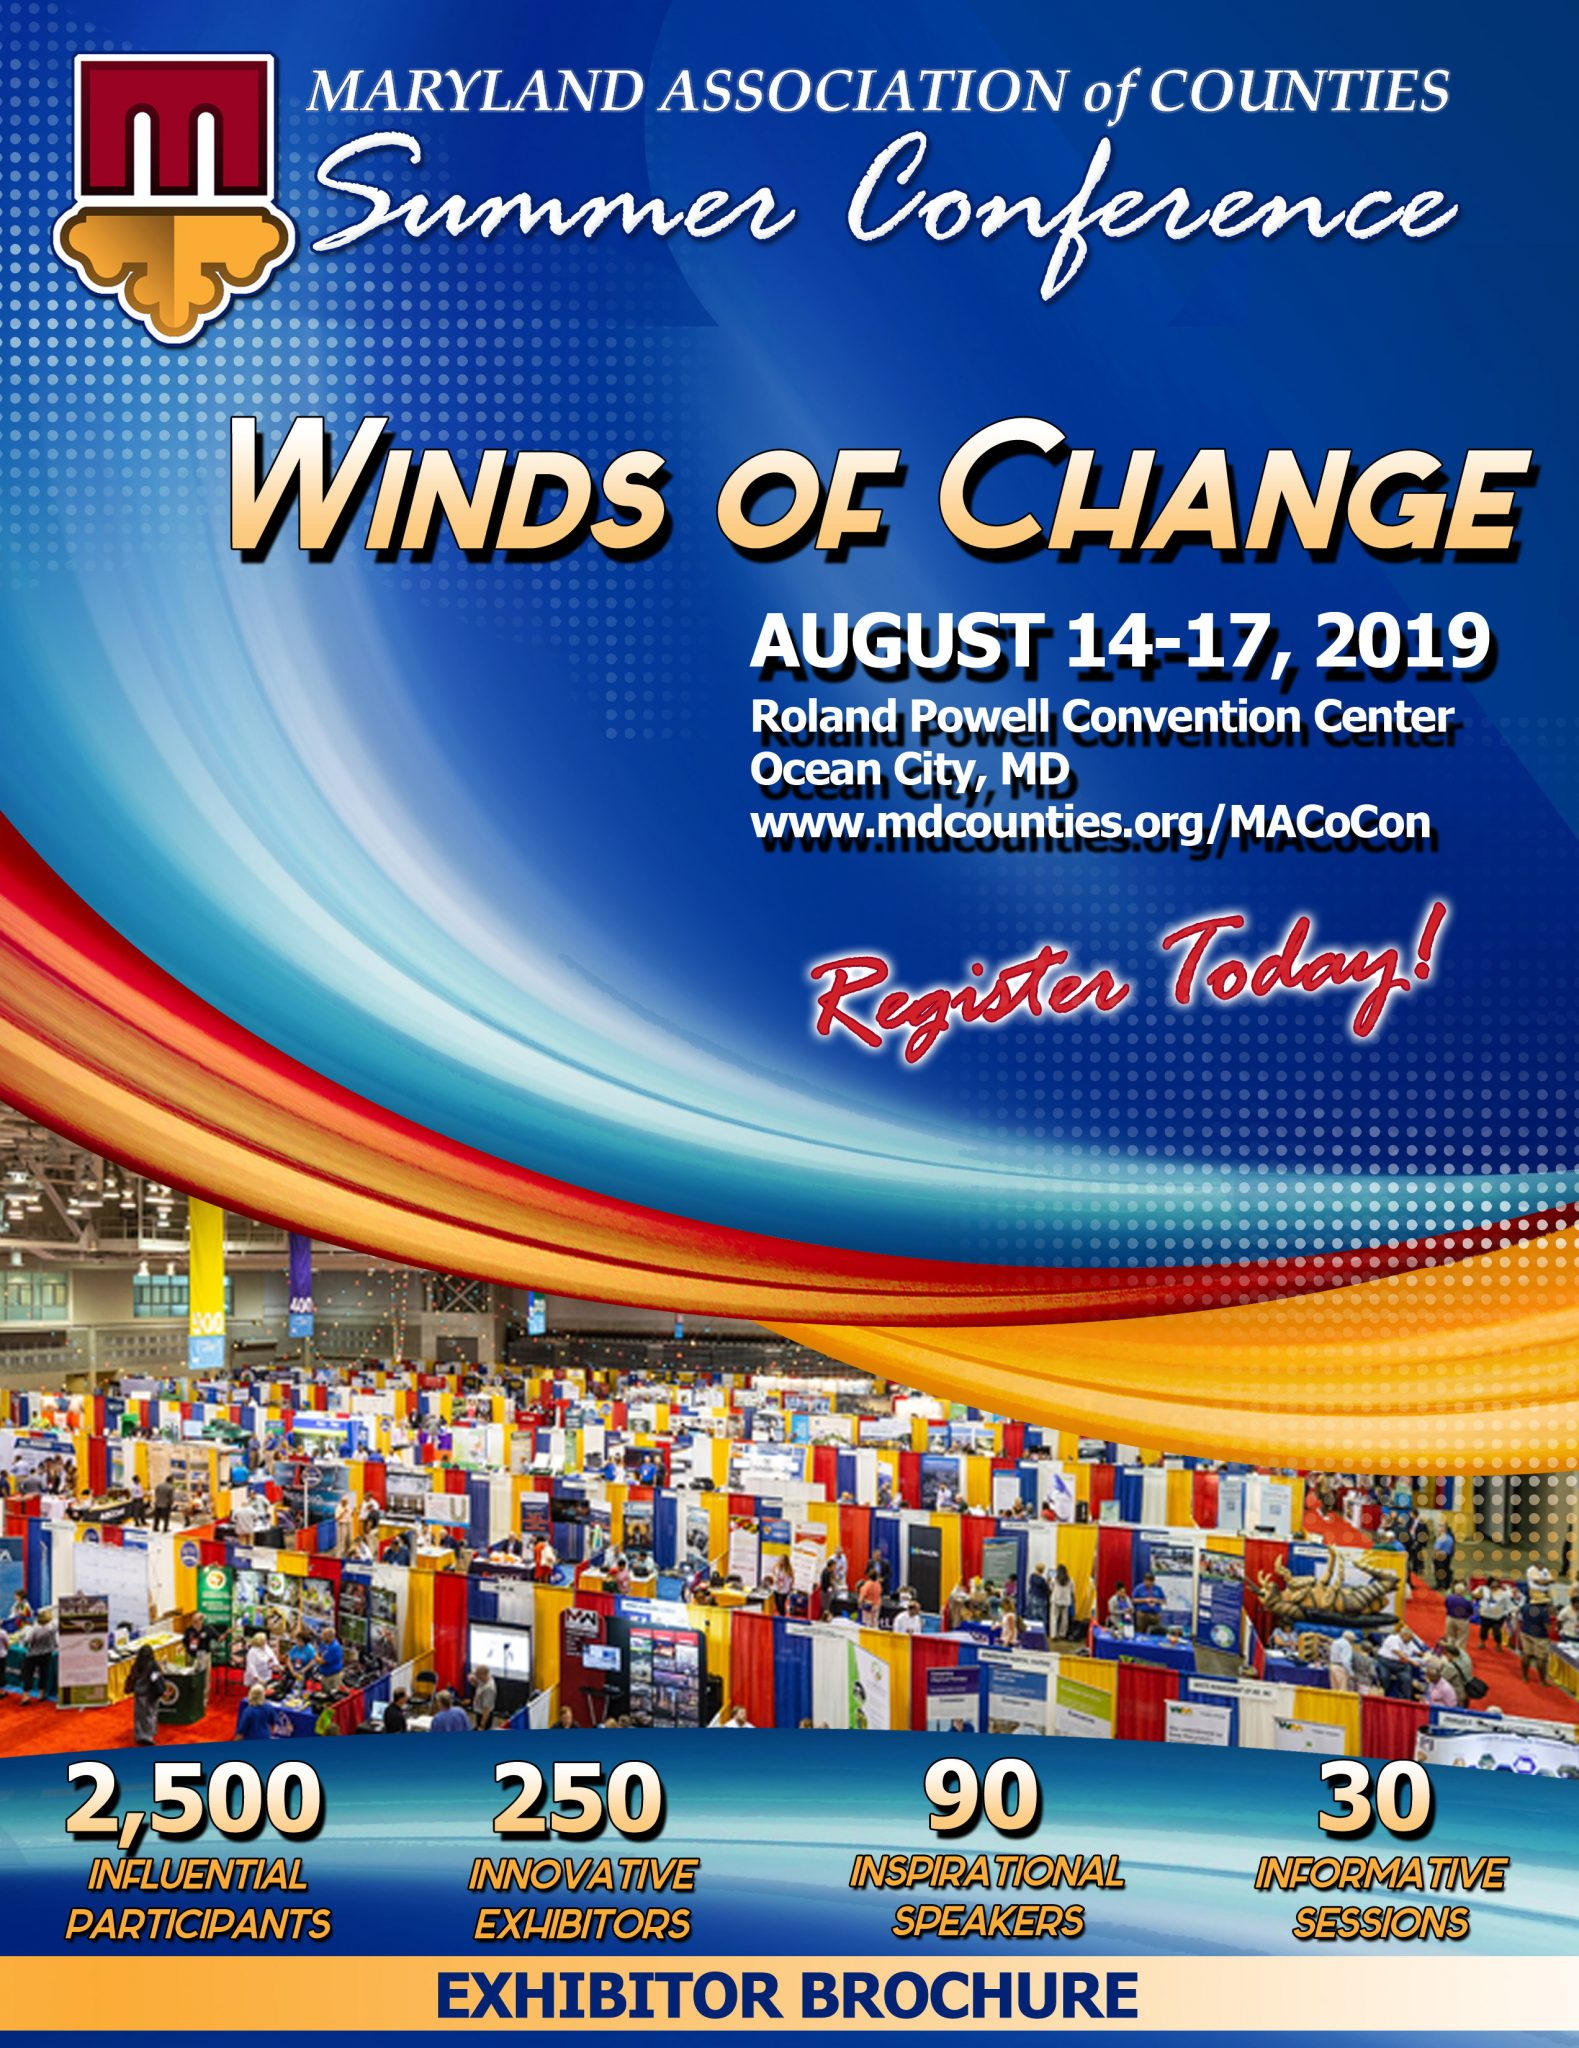 Looking for a Chance to Connect with Counties? Exhibit at #MACoCon!